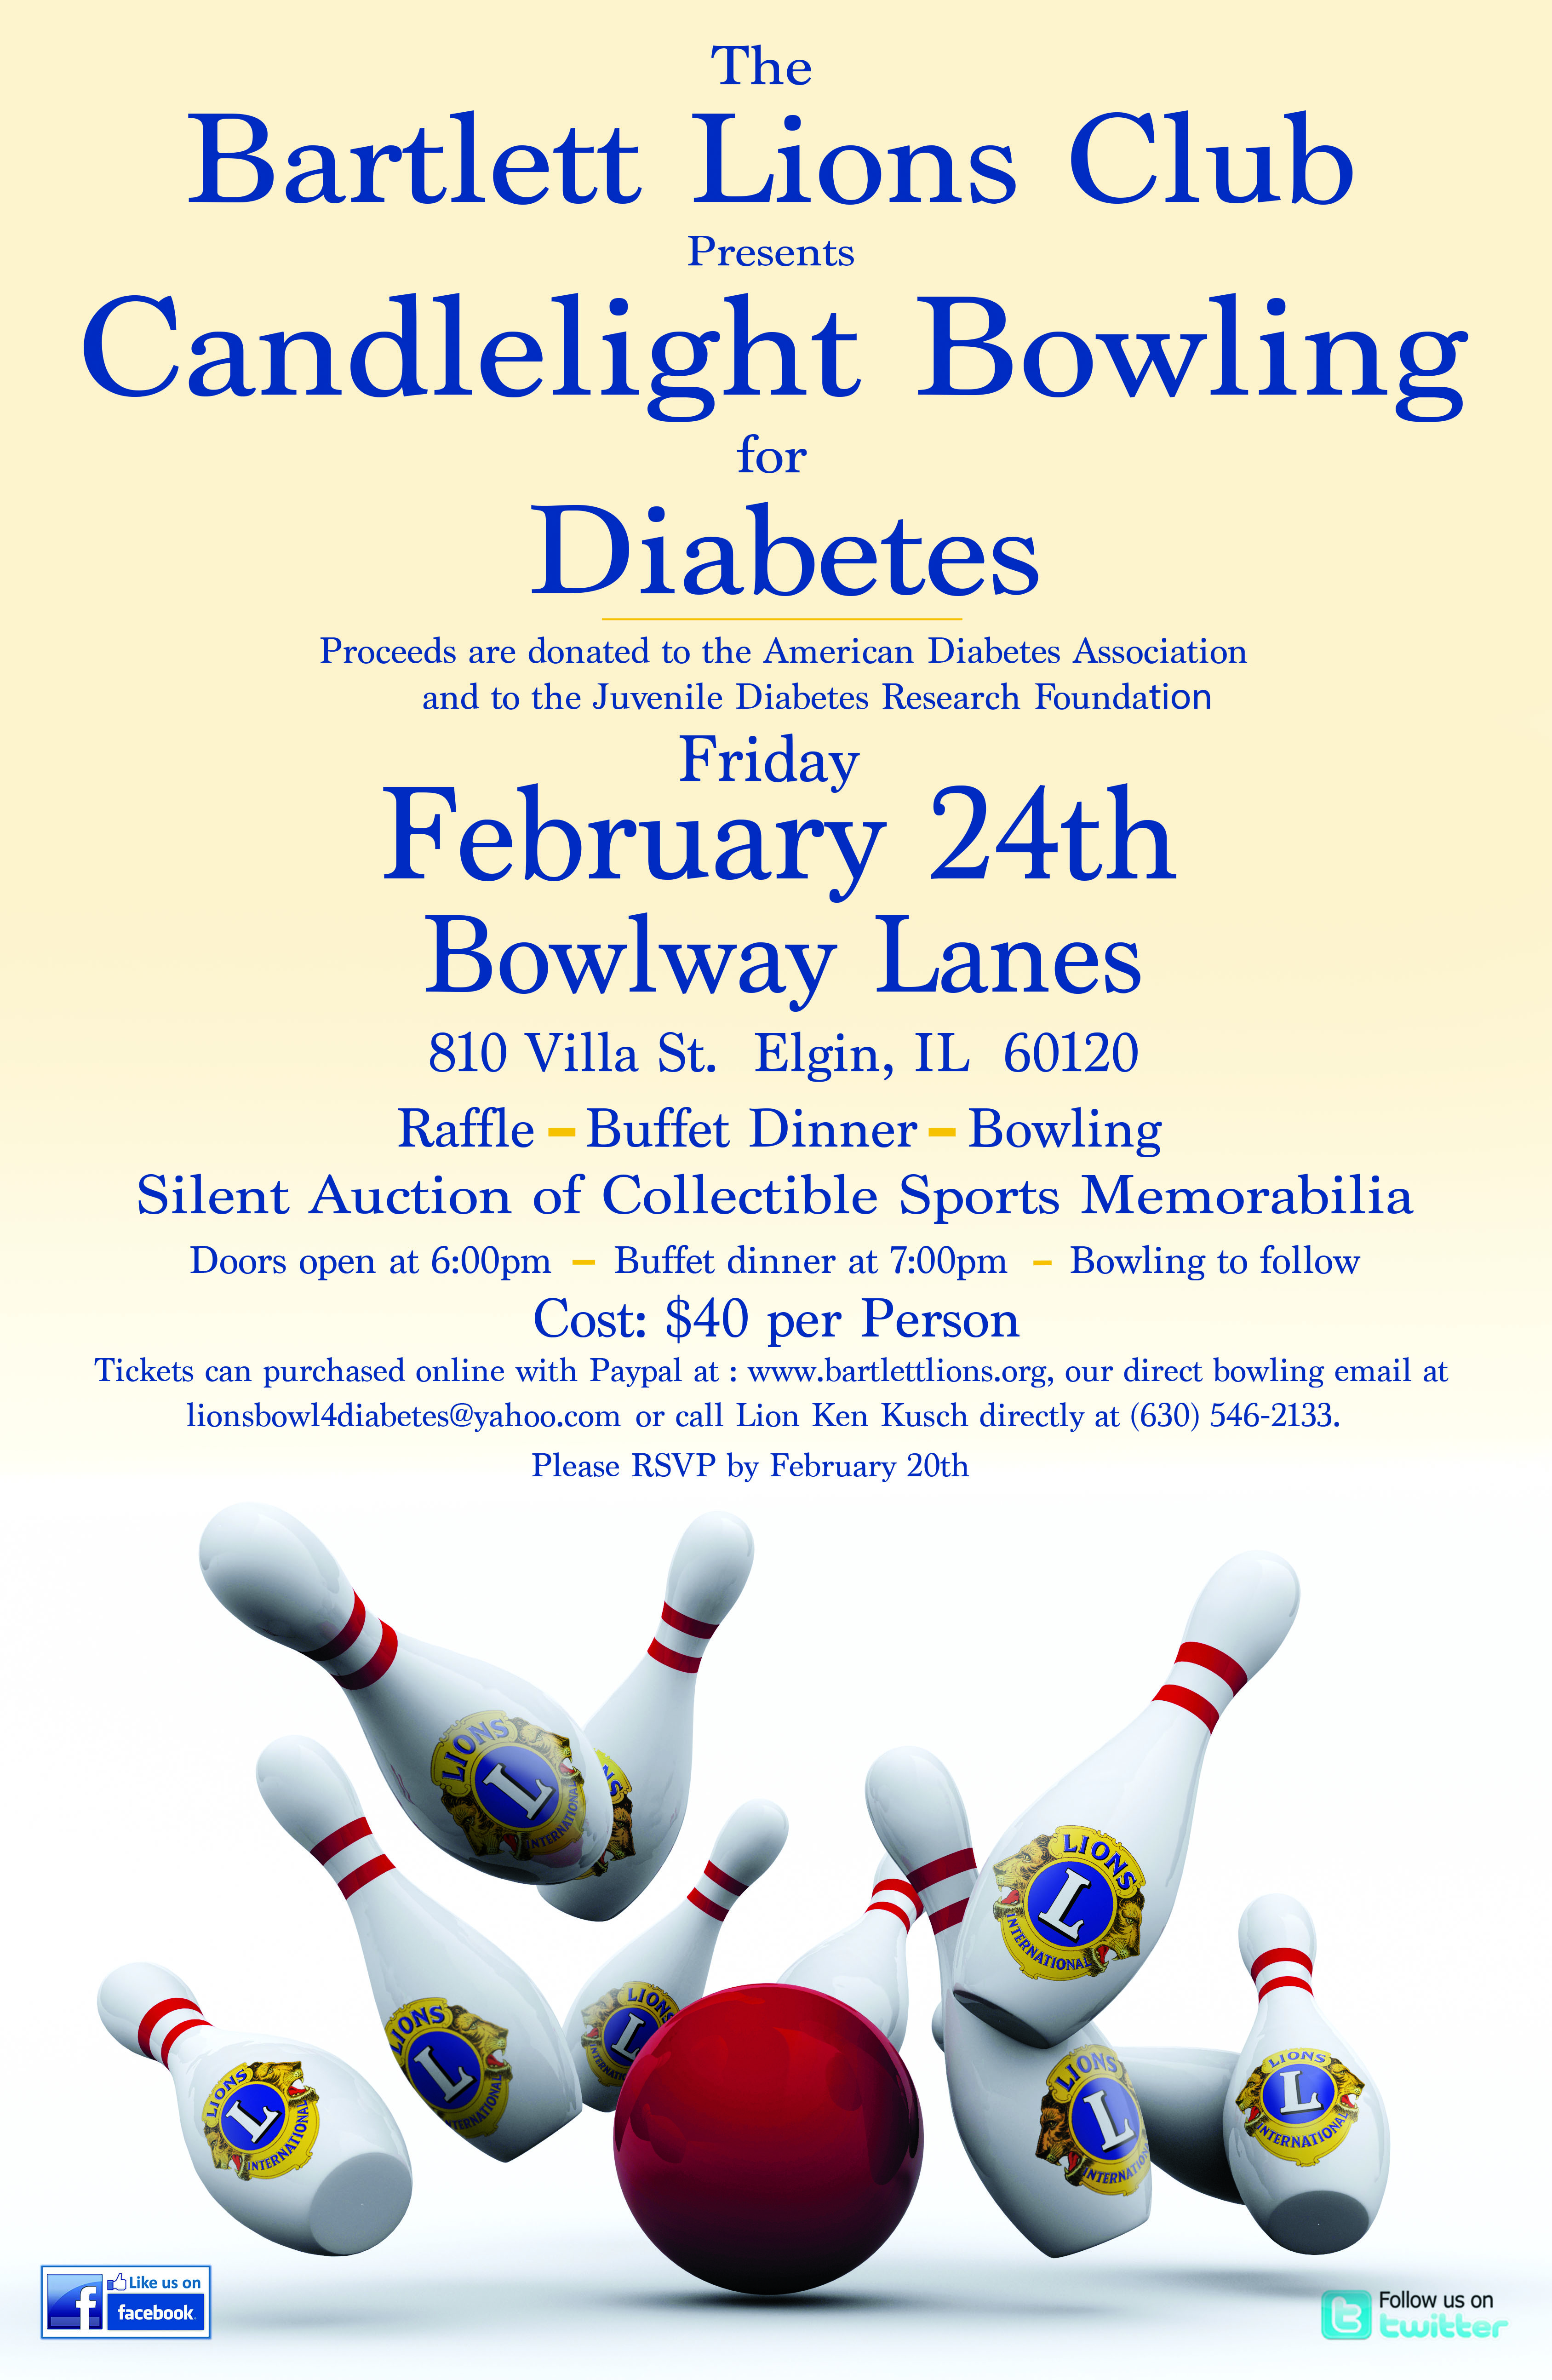 Bartlett_Lions_2017_Bowl_Diabetes_Poster_V1.jpg